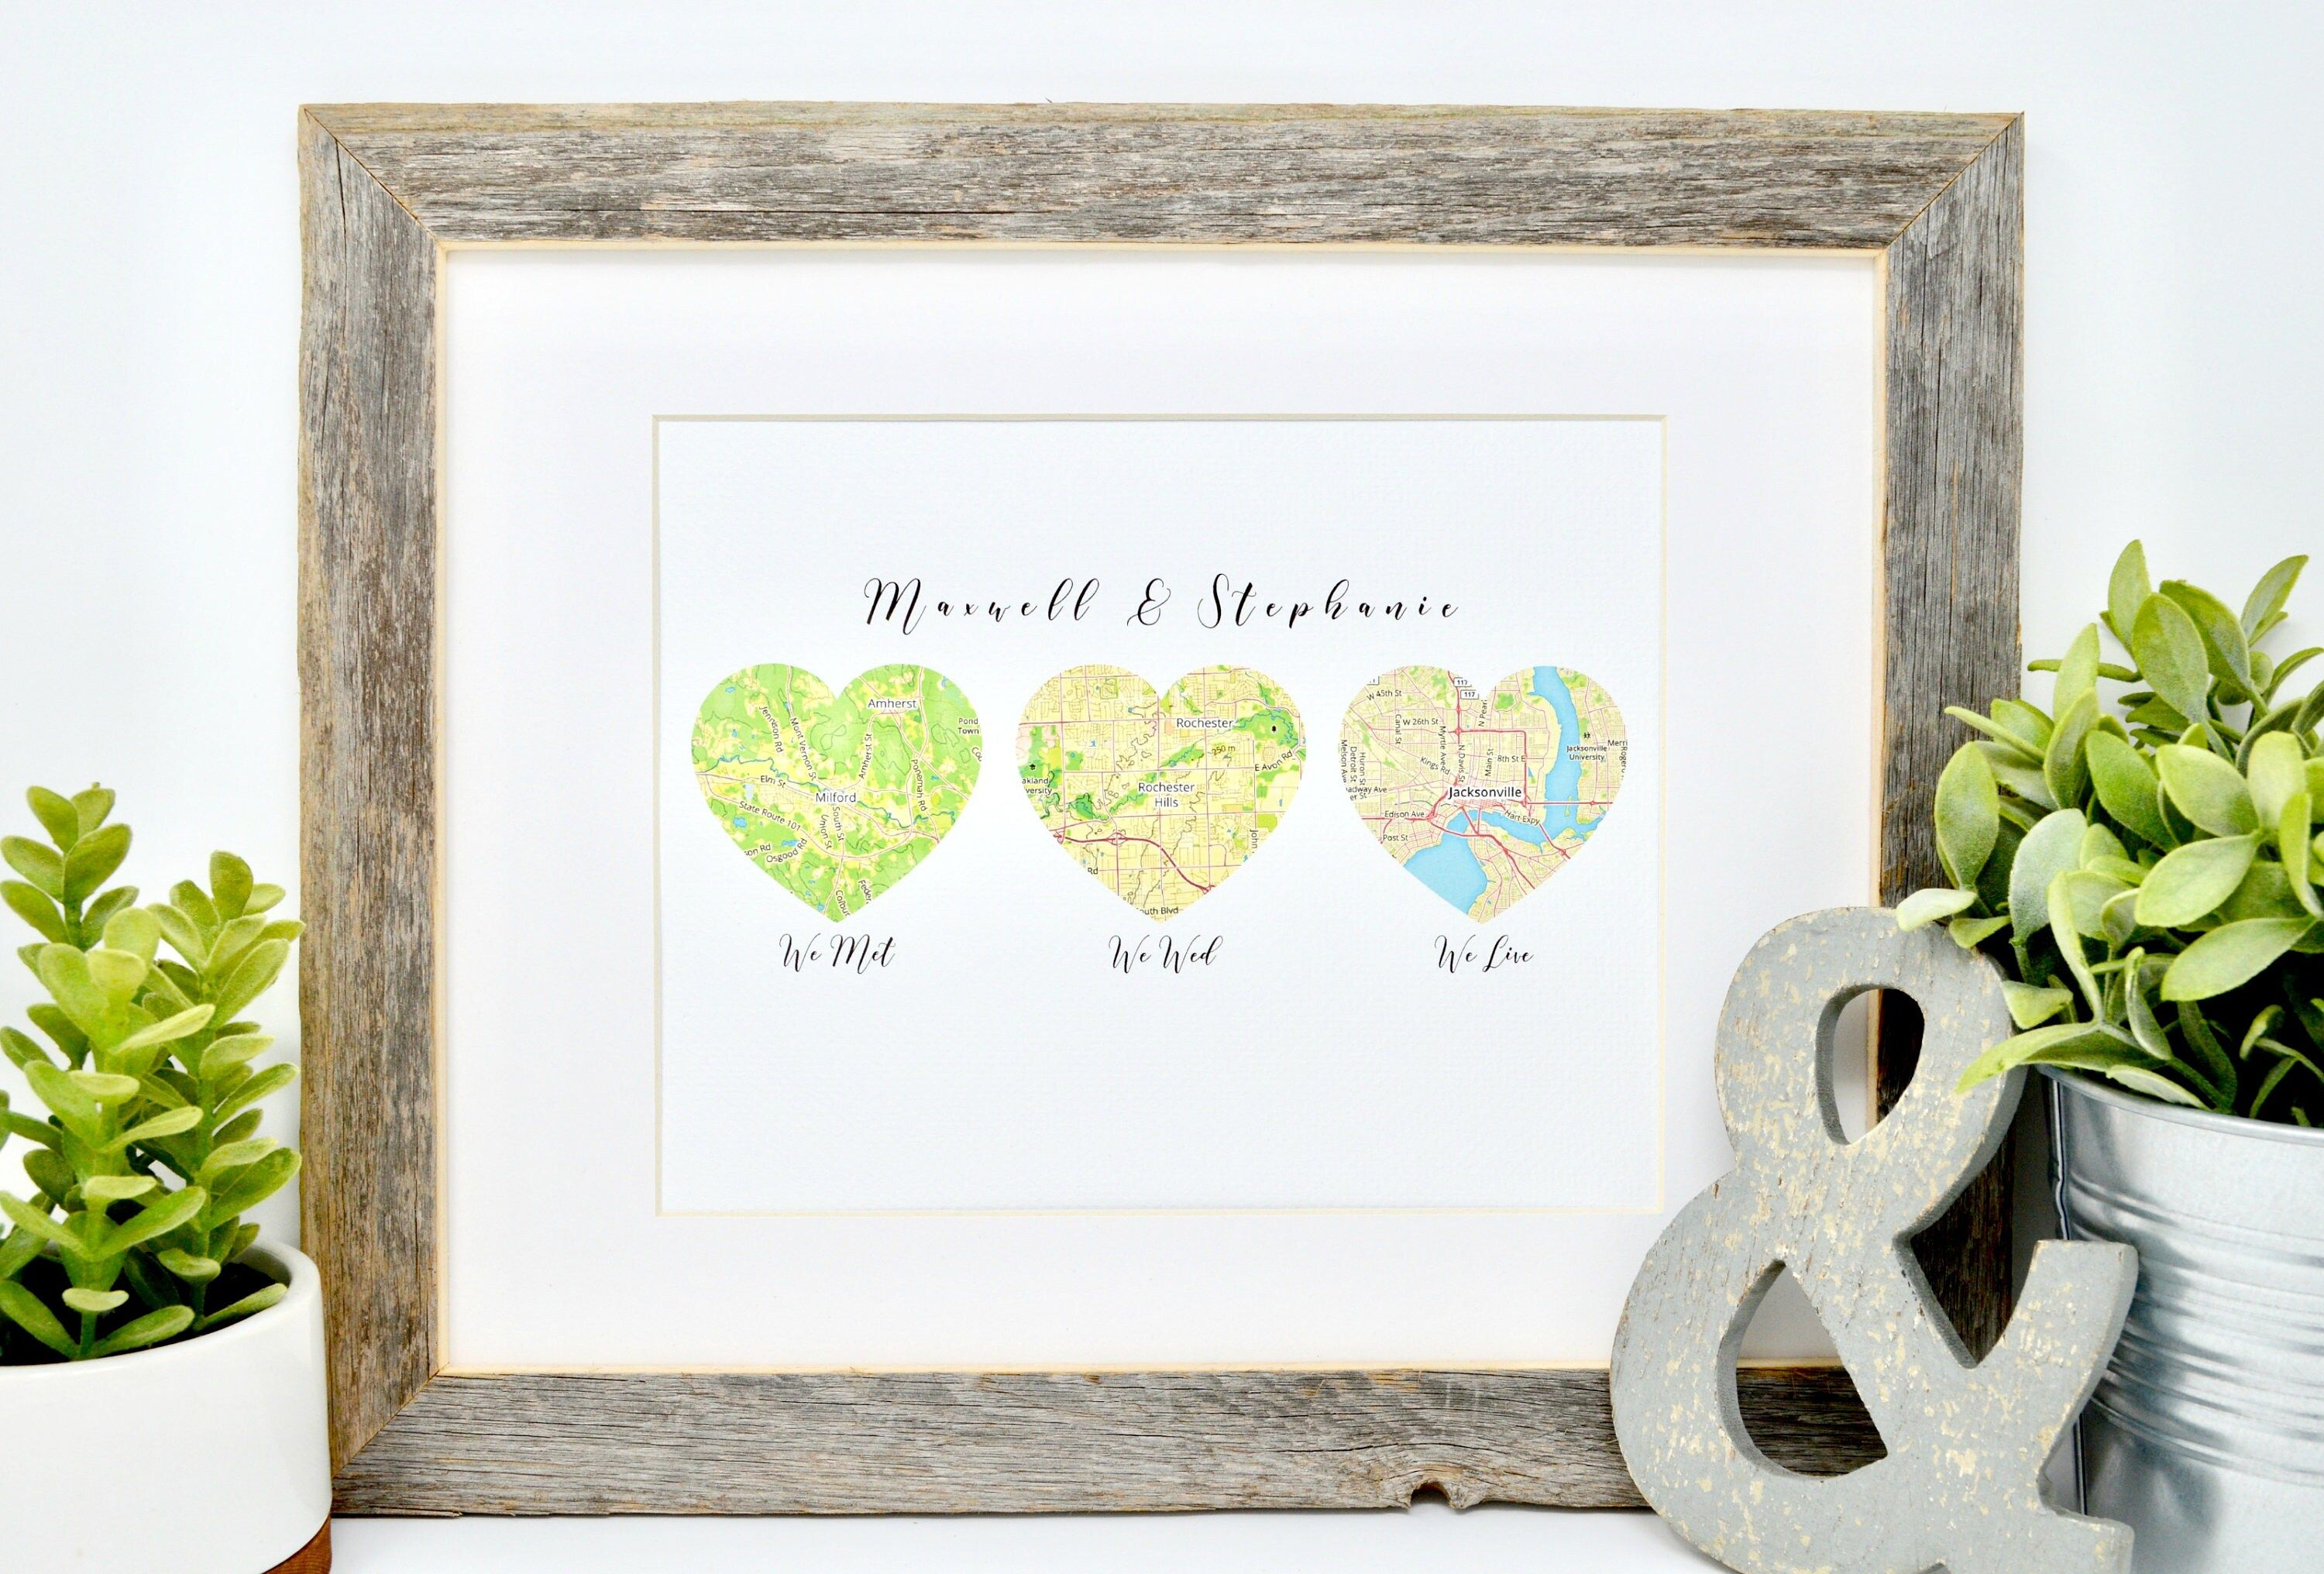 """""""Let us tell your love story in a unique way with our vibrant map print! Your choice of 3 locations representing where you met, wed, and live {Or other milestones if you prefer!}. If some of these special memories occurred in the same area we can zoom in a bit closer to differentiate. Take your love for a walk down memory lane with a romantic gift that will be cherished for years to come! For options with more or less locations check back at our home page! HOW TO ORDER Please give the following"""